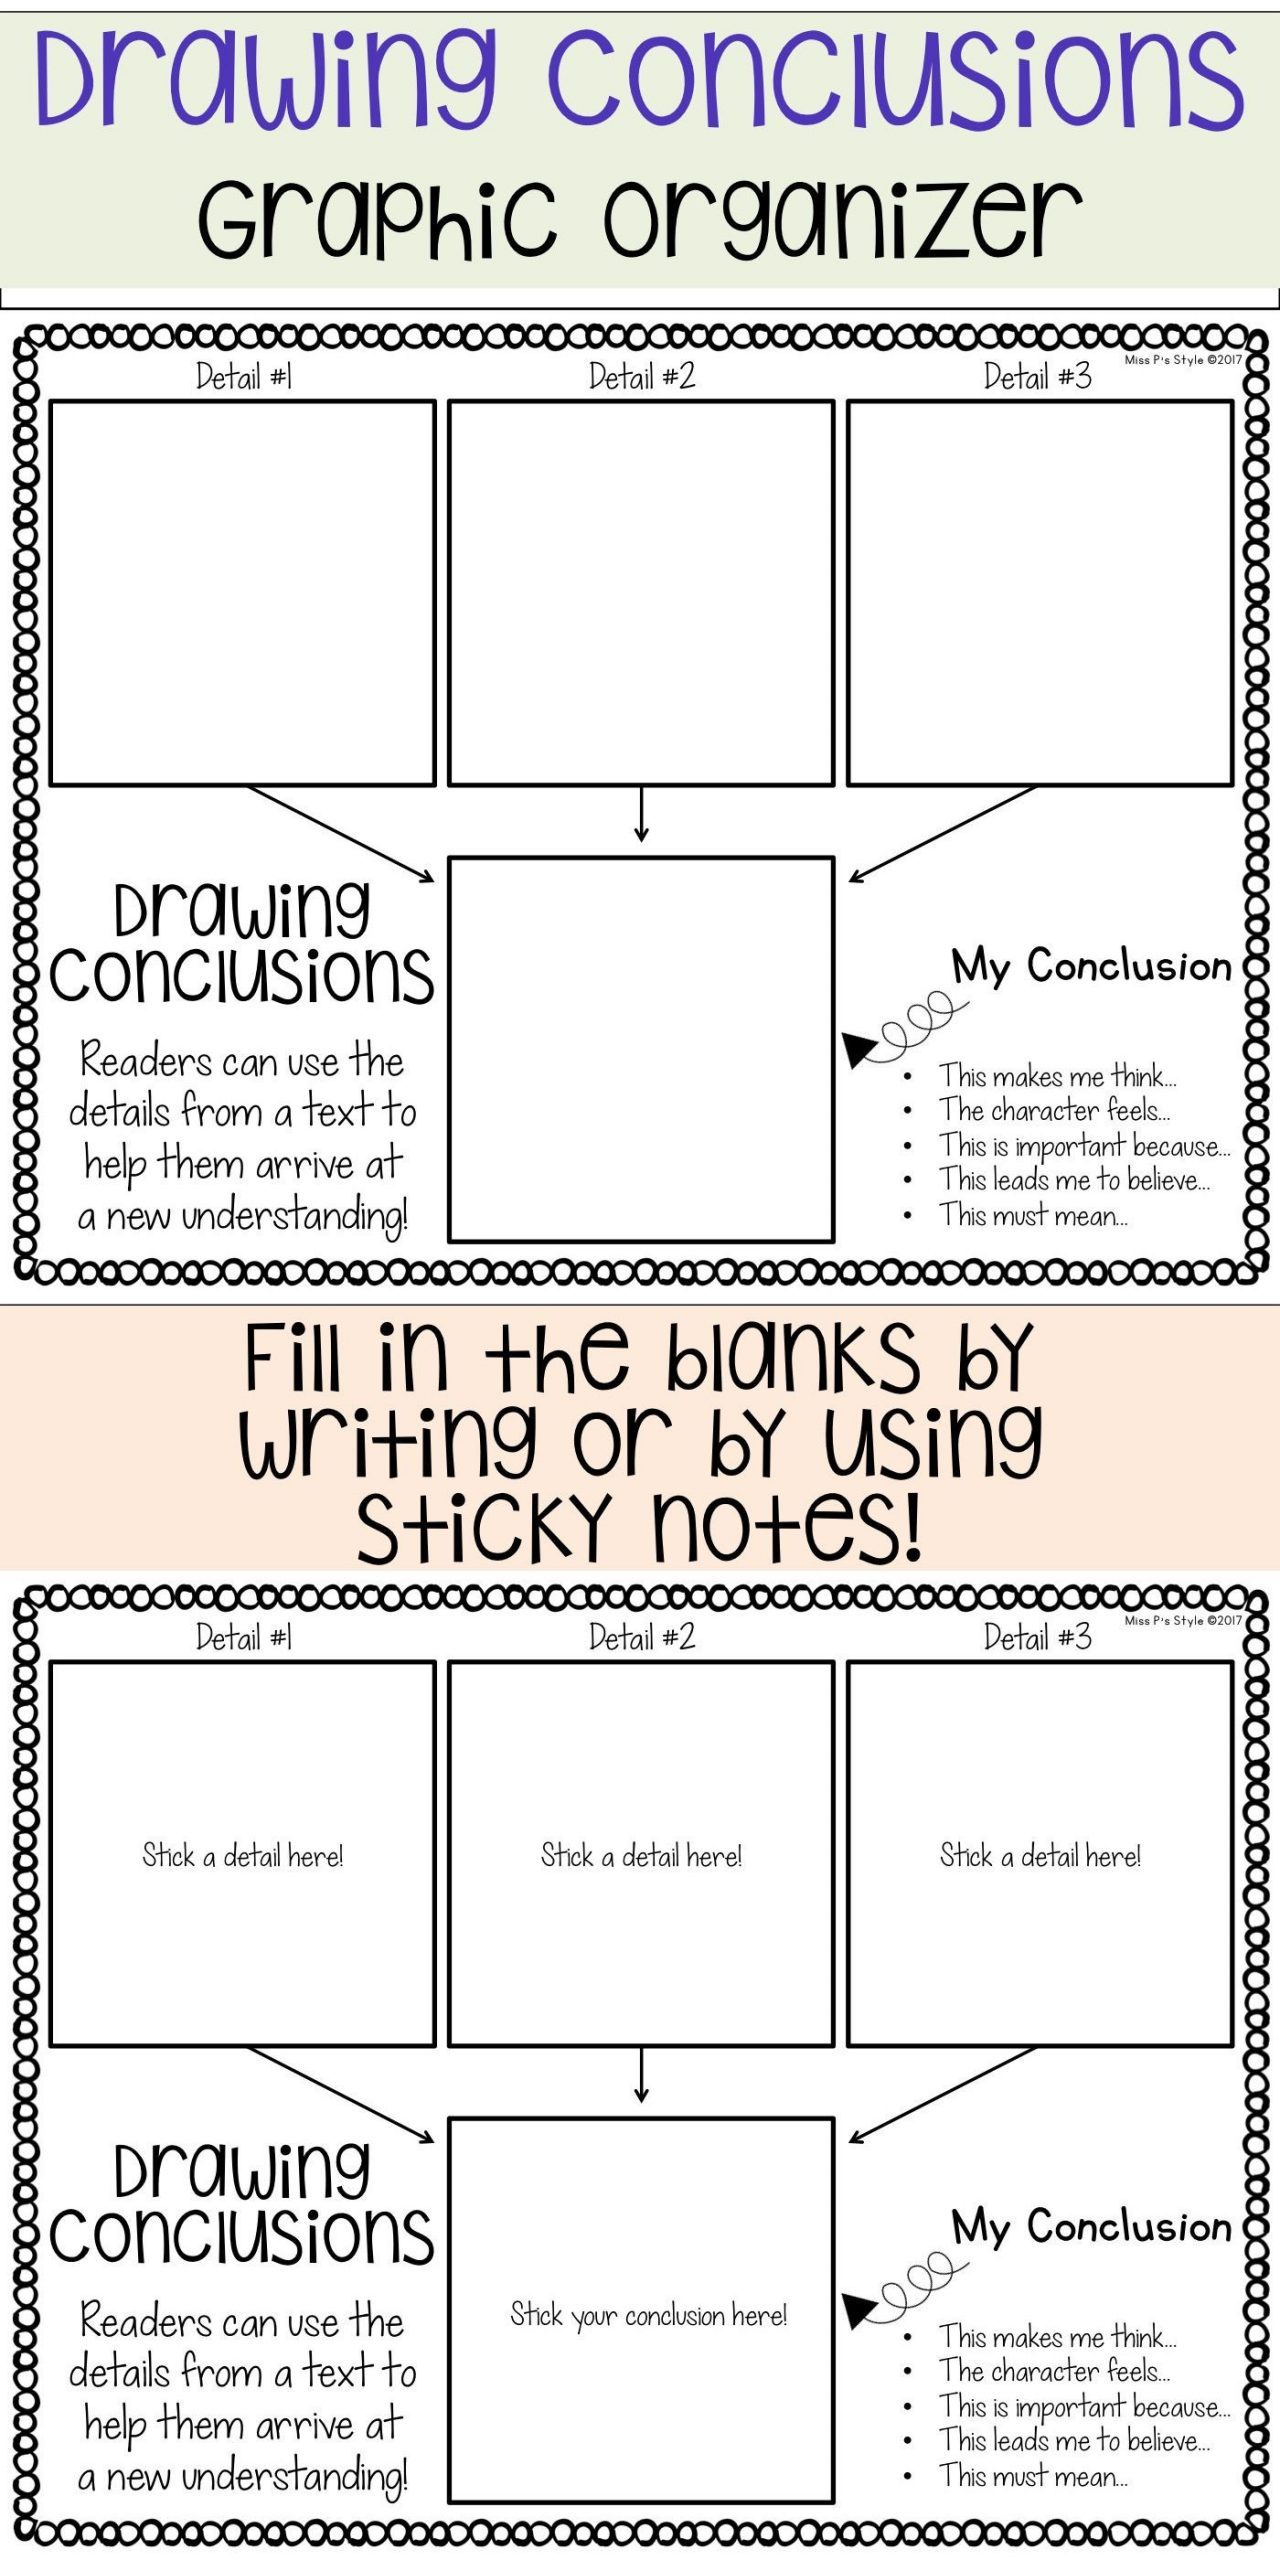 Drawing Conclusions Worksheets 2nd Grade Drawing Conclusions Graphic organizer